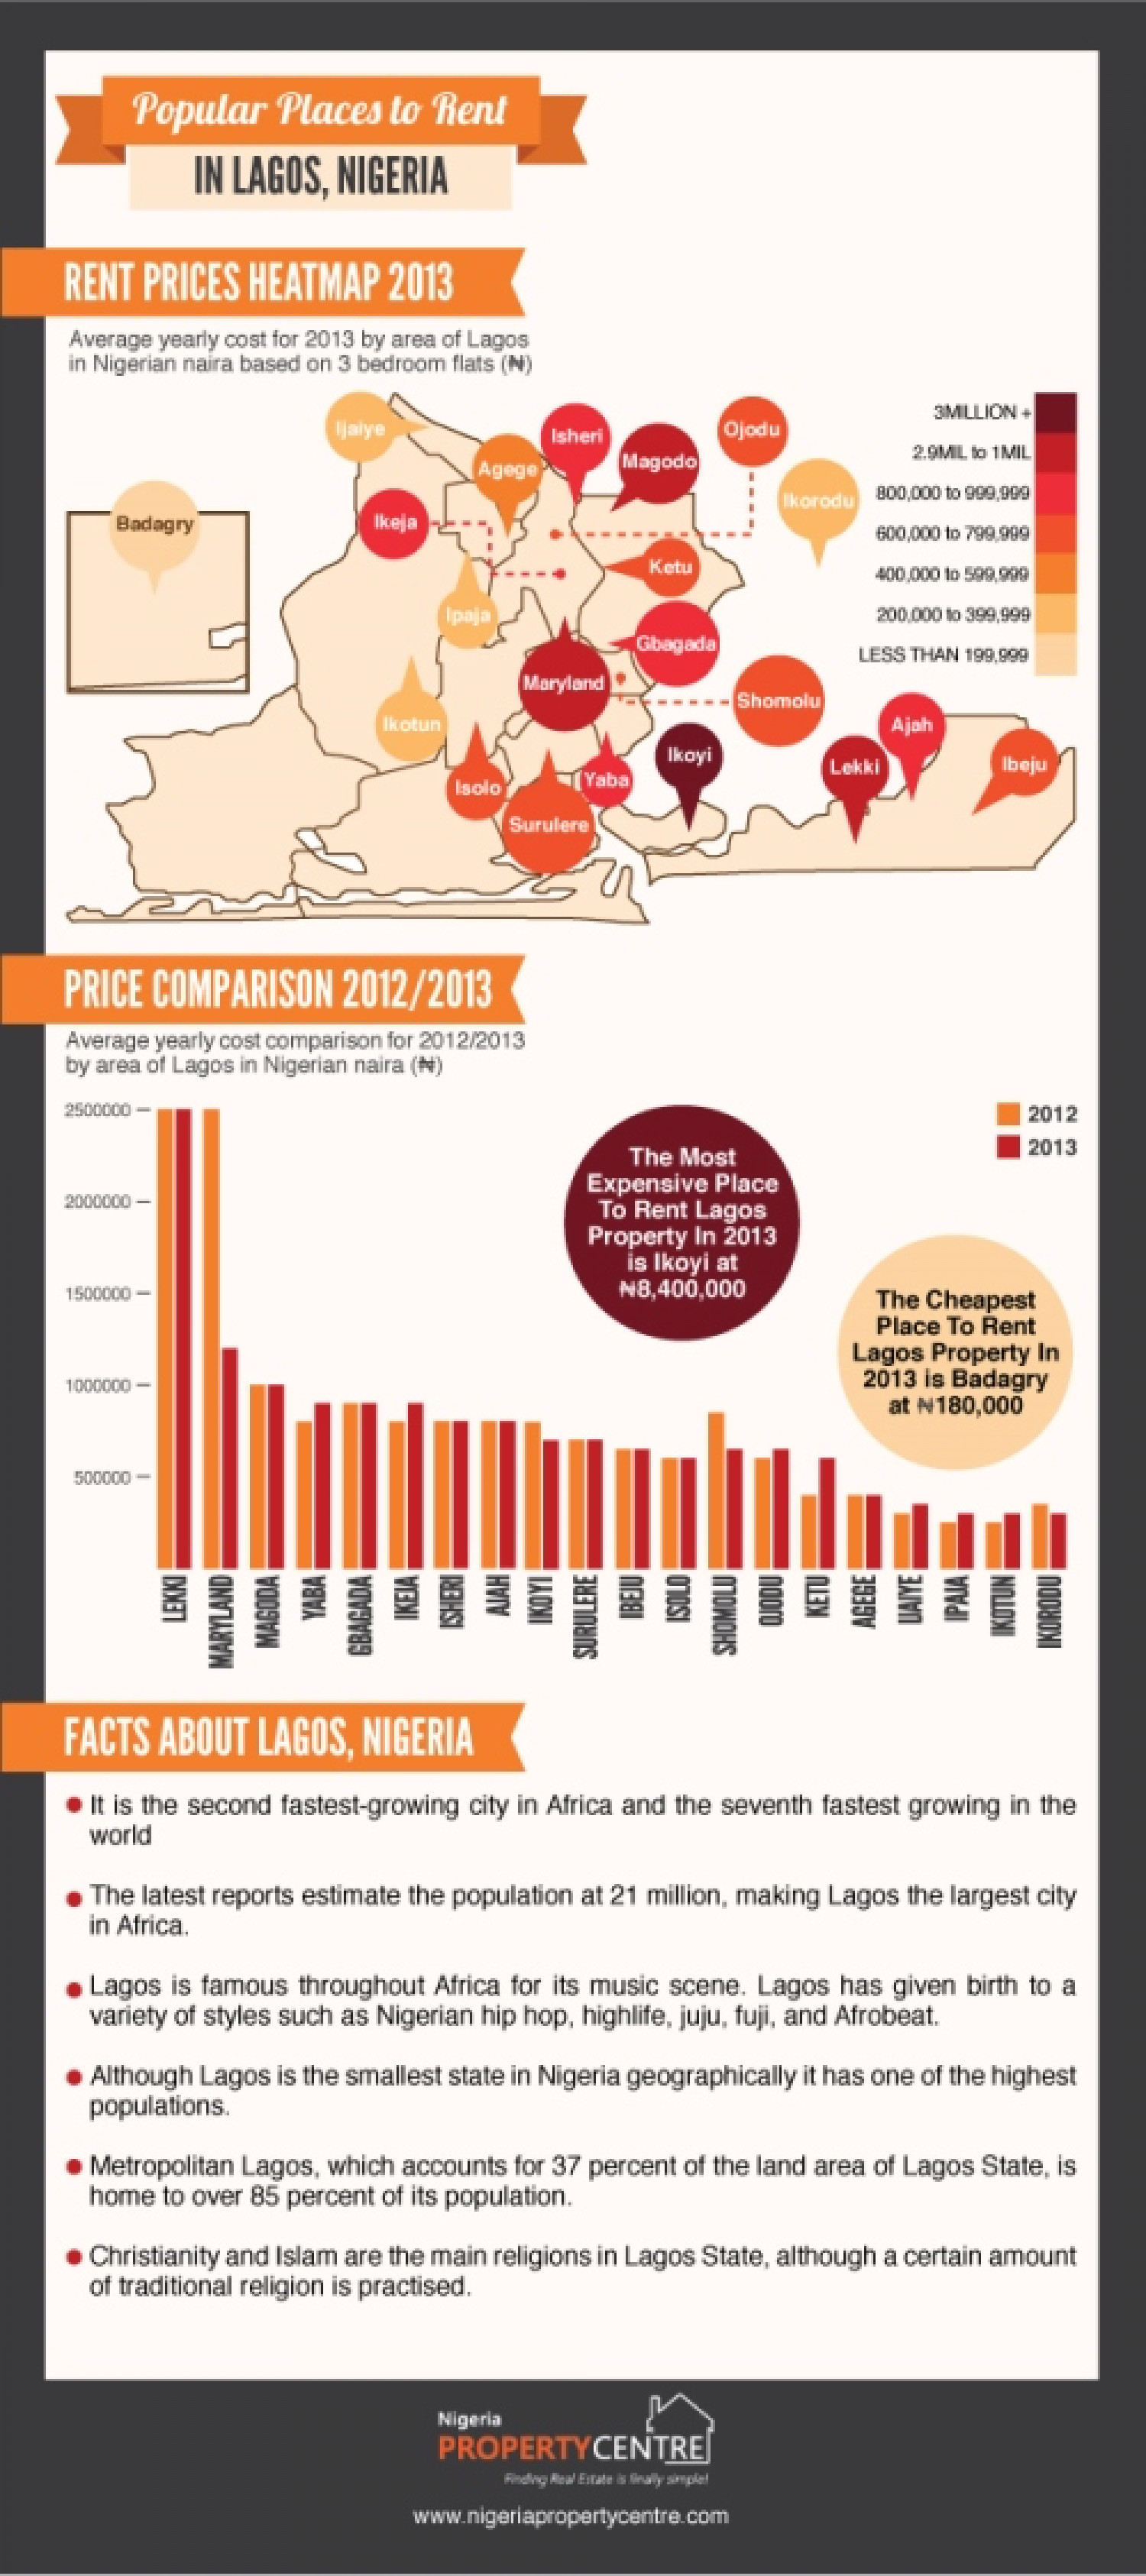 Popular Places To Rent In Lagos, Nigeria Infographic